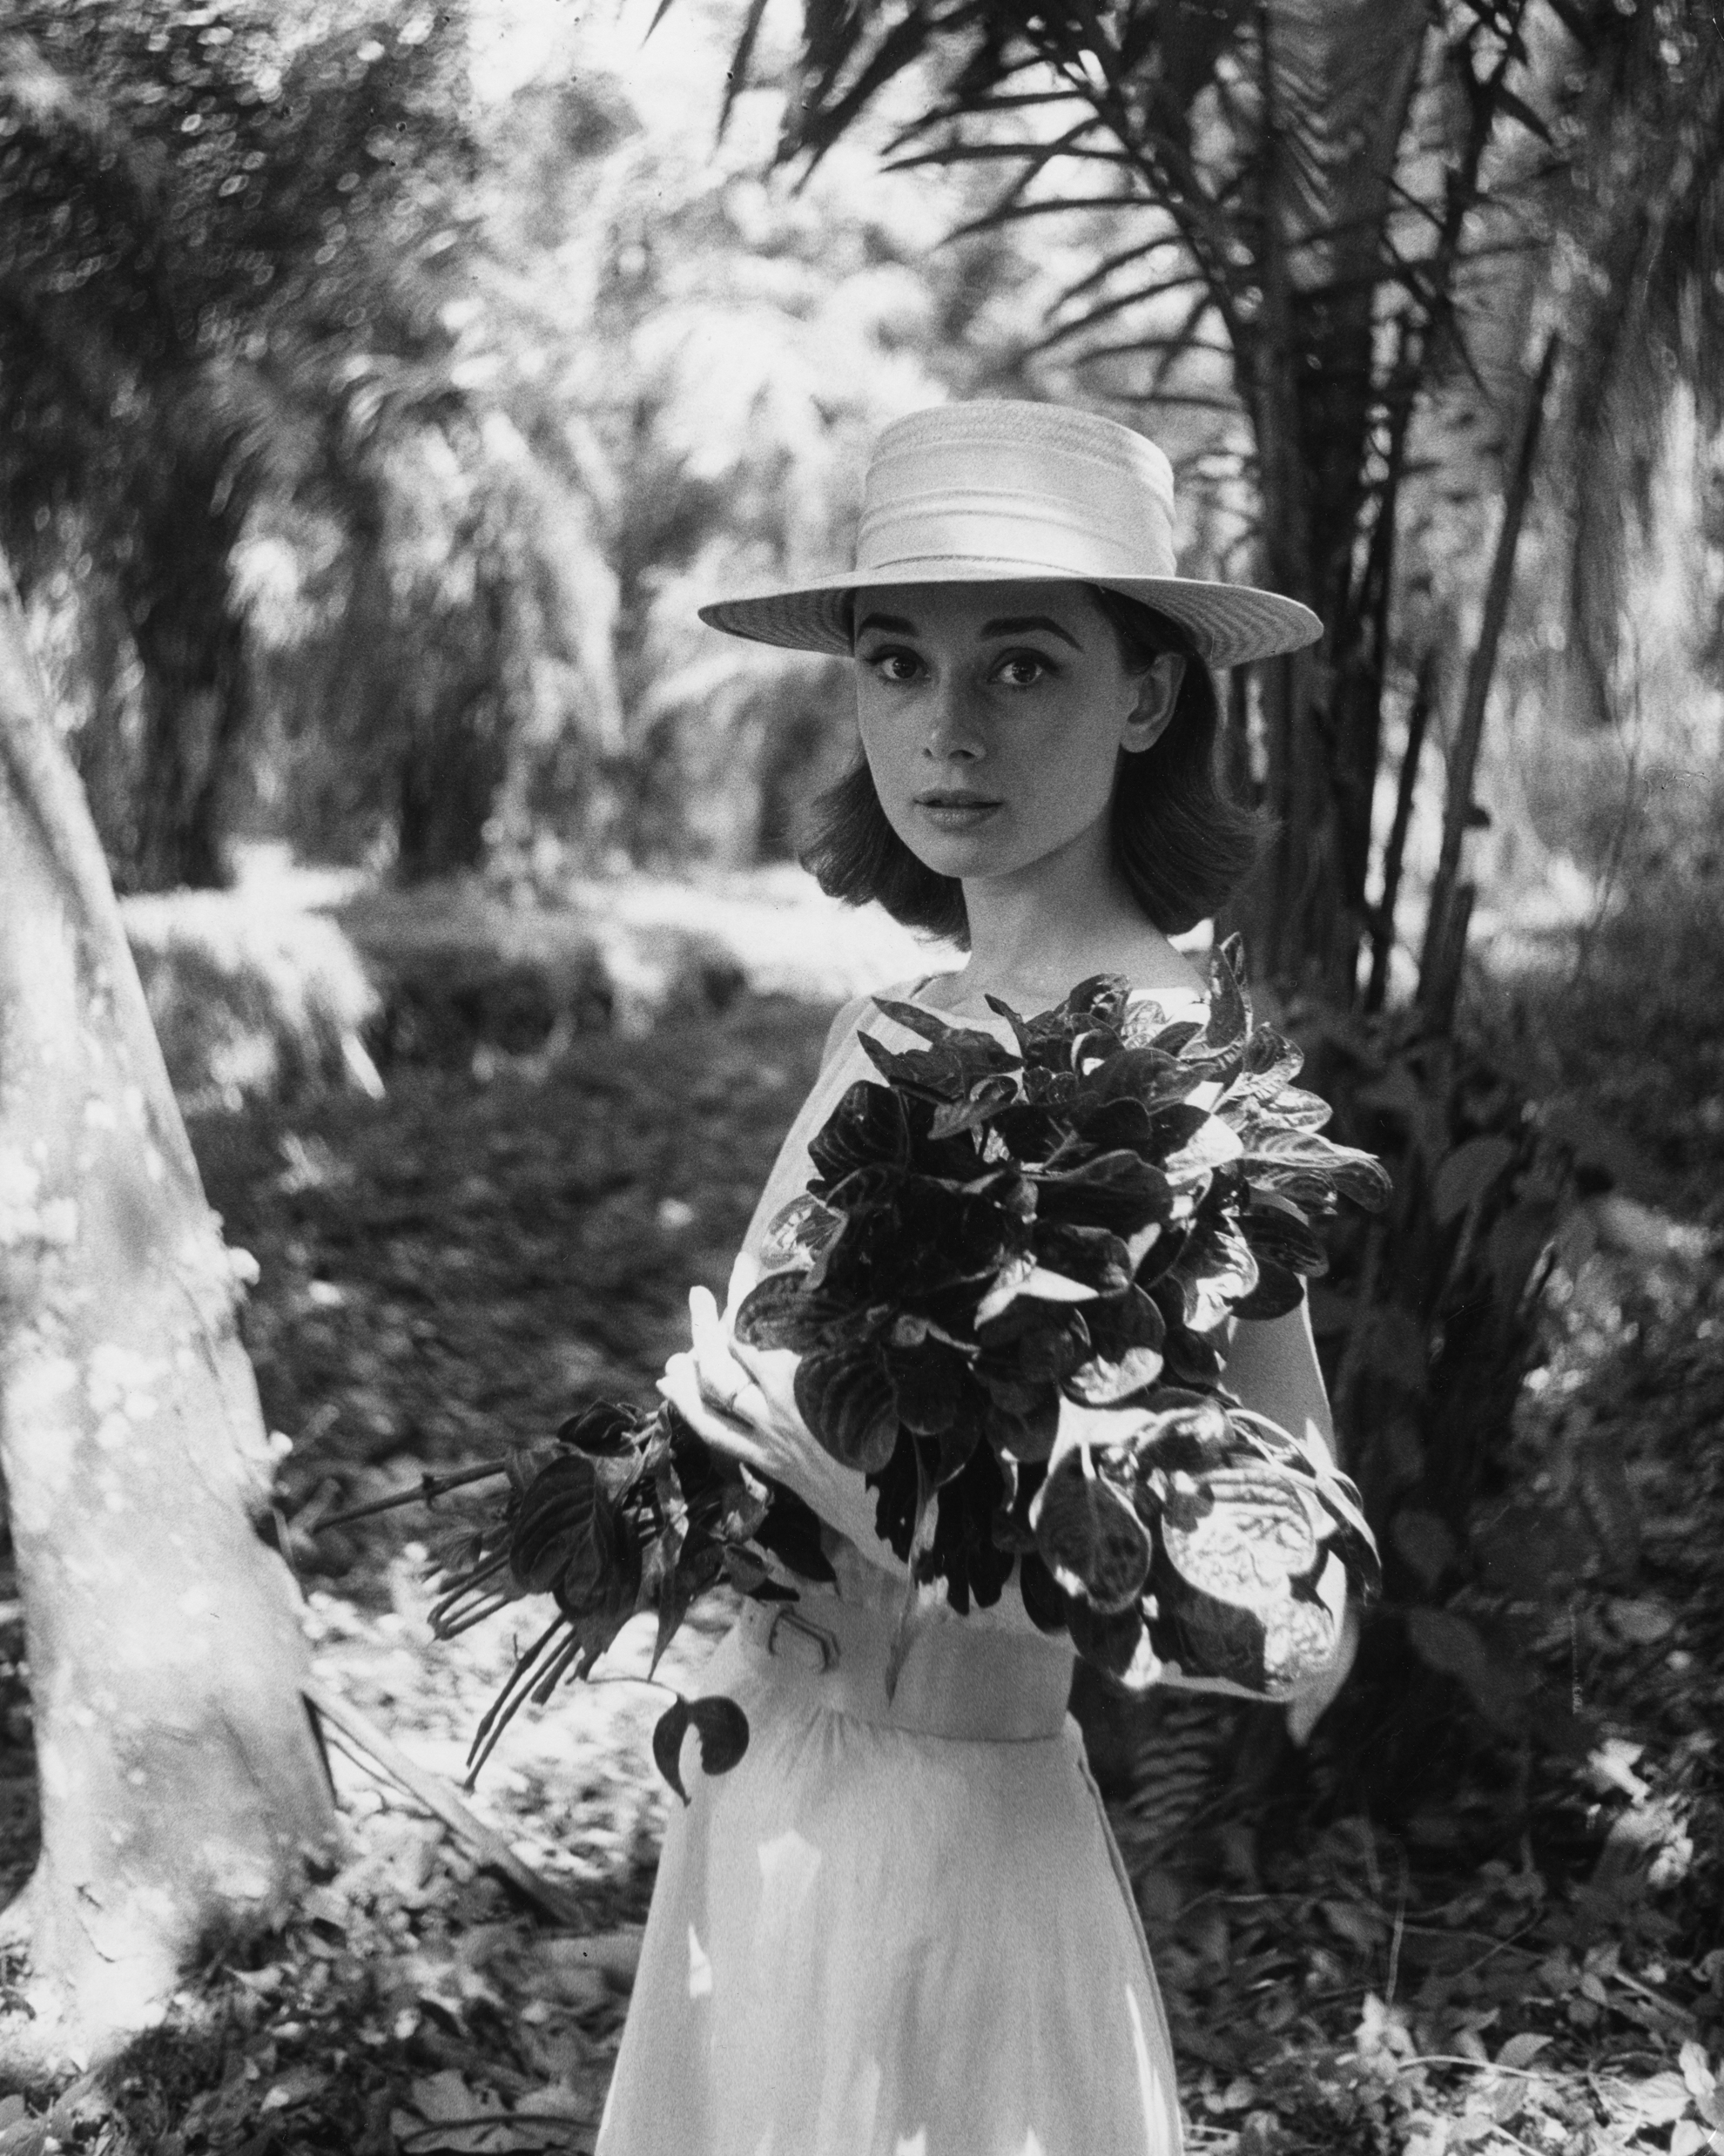 Audrey Hepburn on location in Africa for The Nun's Story by Leo Fuchs, 1958 ©Leo Fuchs. Used with permission from The National Portrait Gallery.